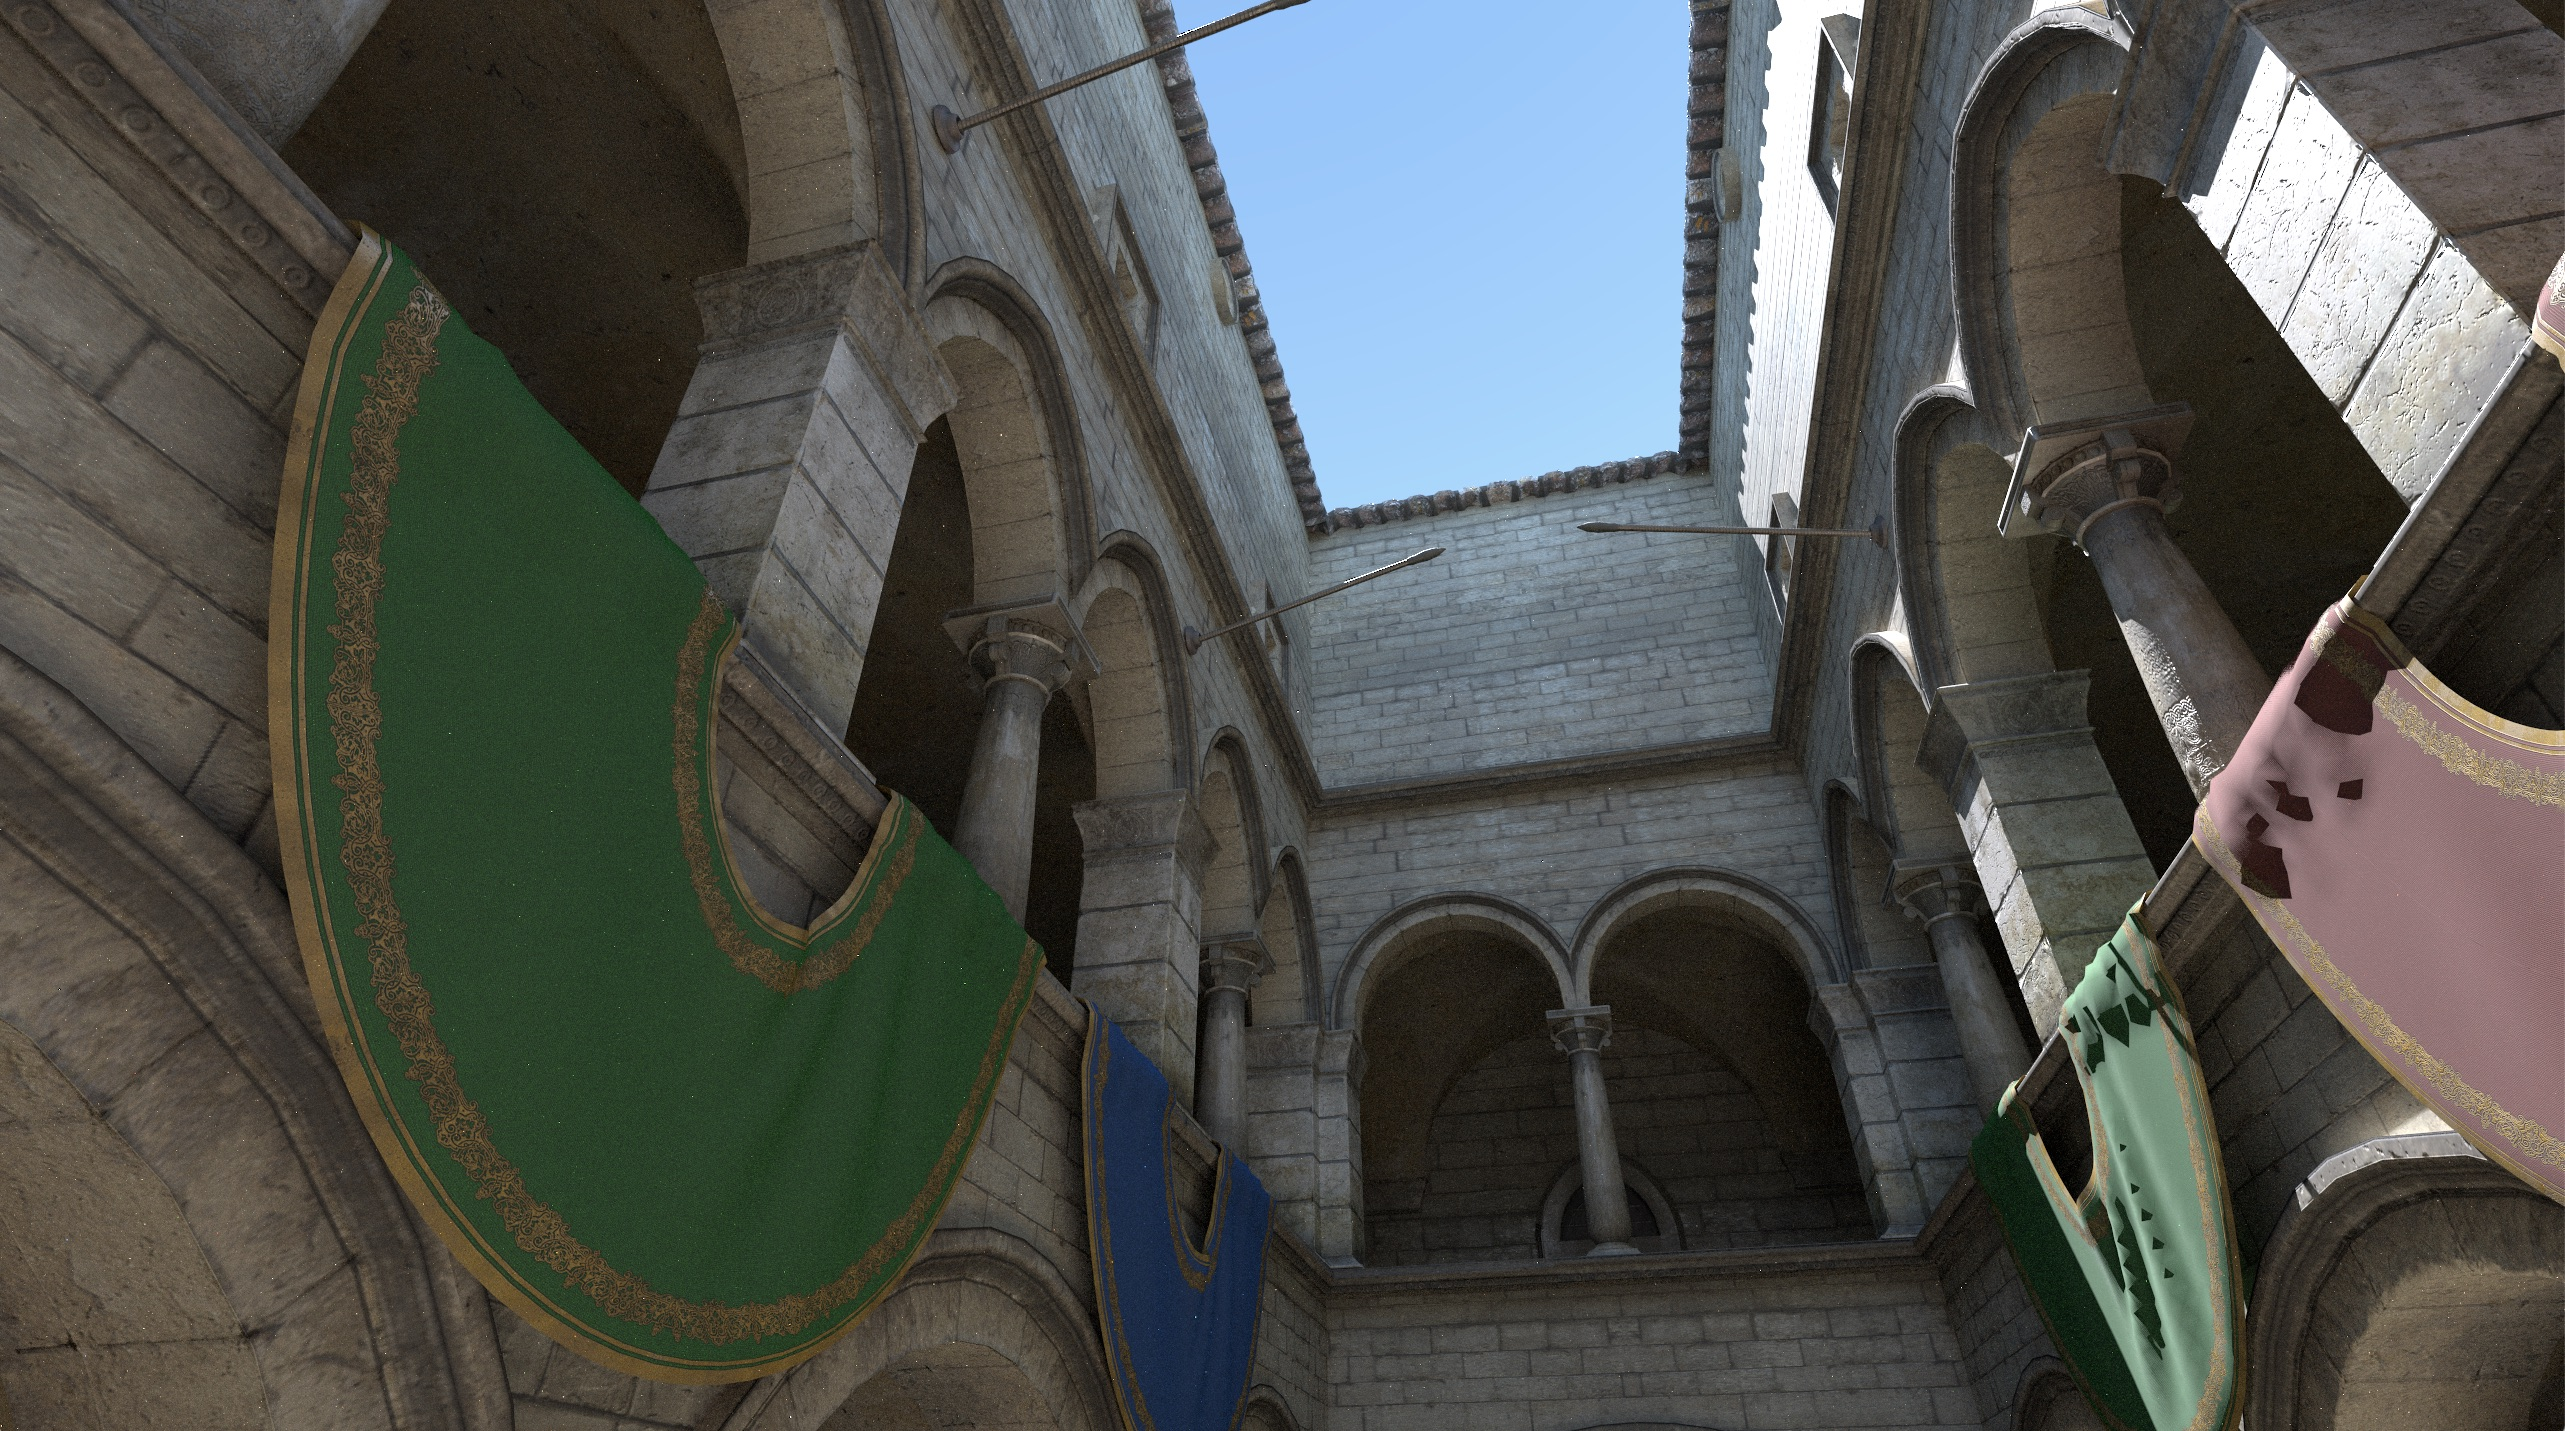 Sponza rendered from the same perspective by a path tracer